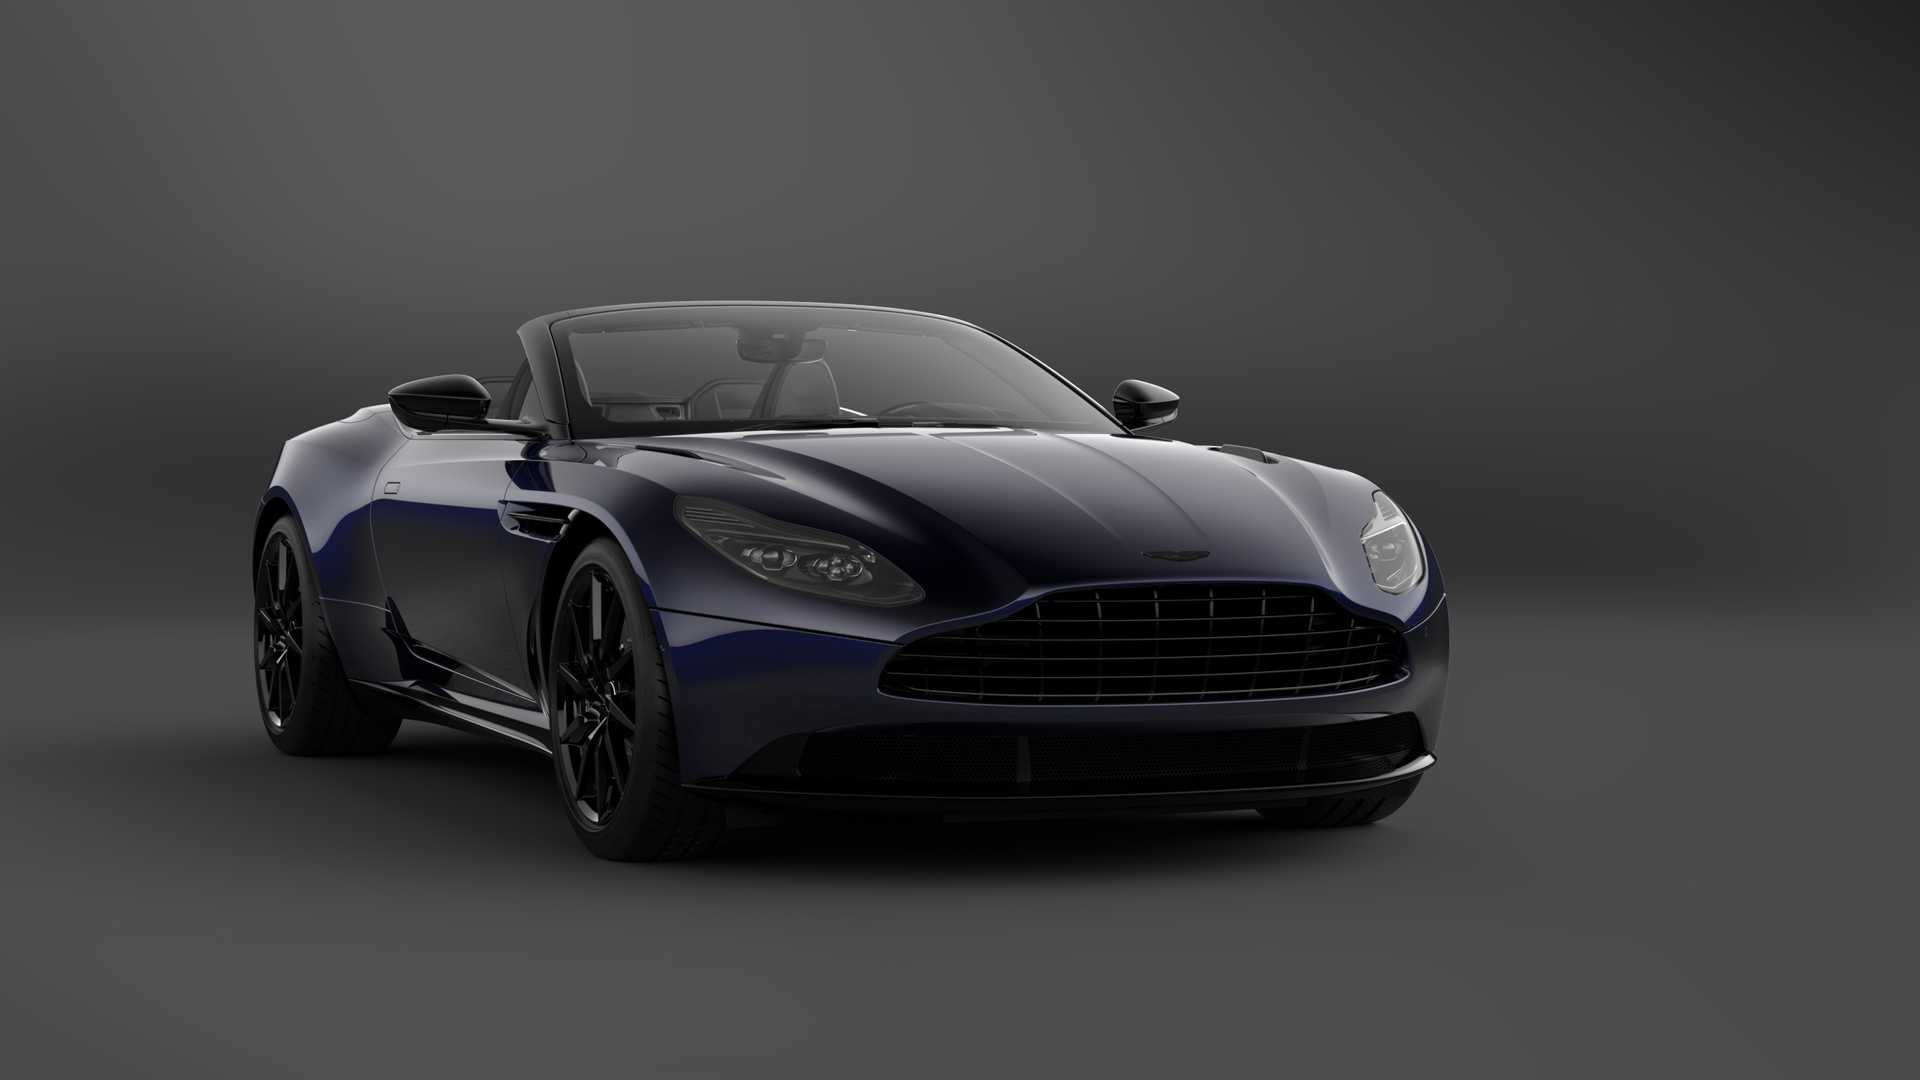 2021-aston-martin-db11-v8-shadow-edition-8.jpg